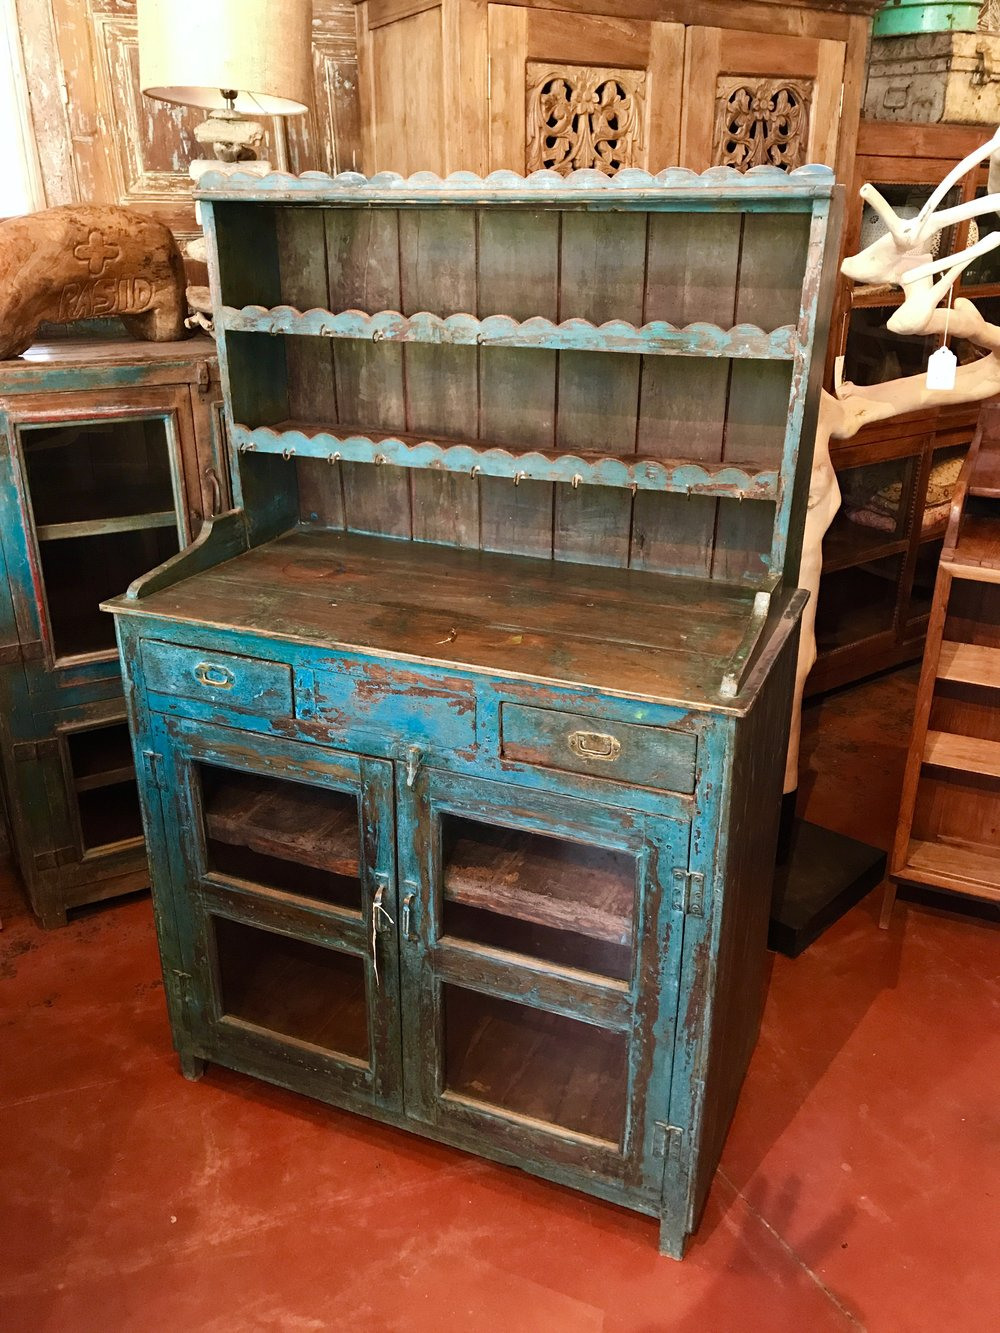 "Vintage Indian Kitchen Hutch   41""w x 21""d x 64""h  $1395.00  #7266"